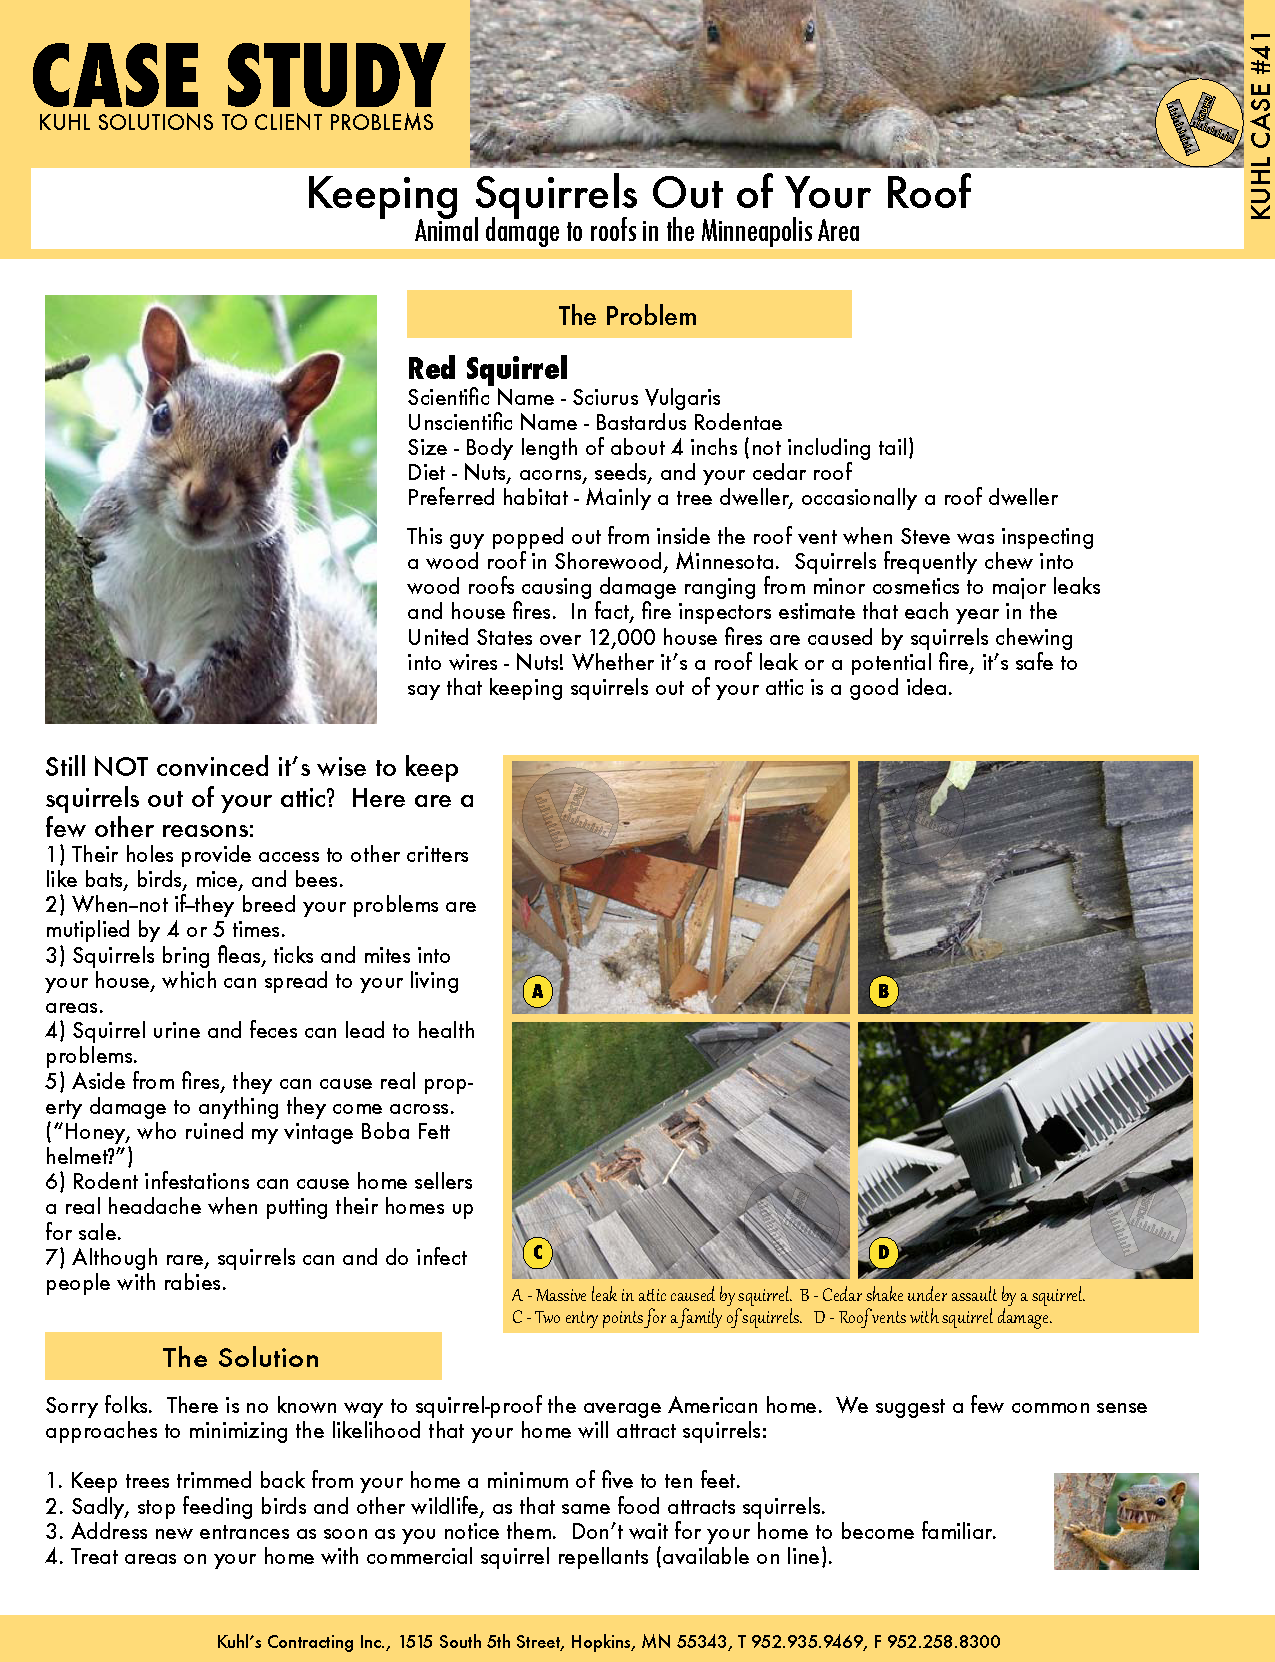 Keeping Squirrels Out of Your Roof: Animal Damage Tips